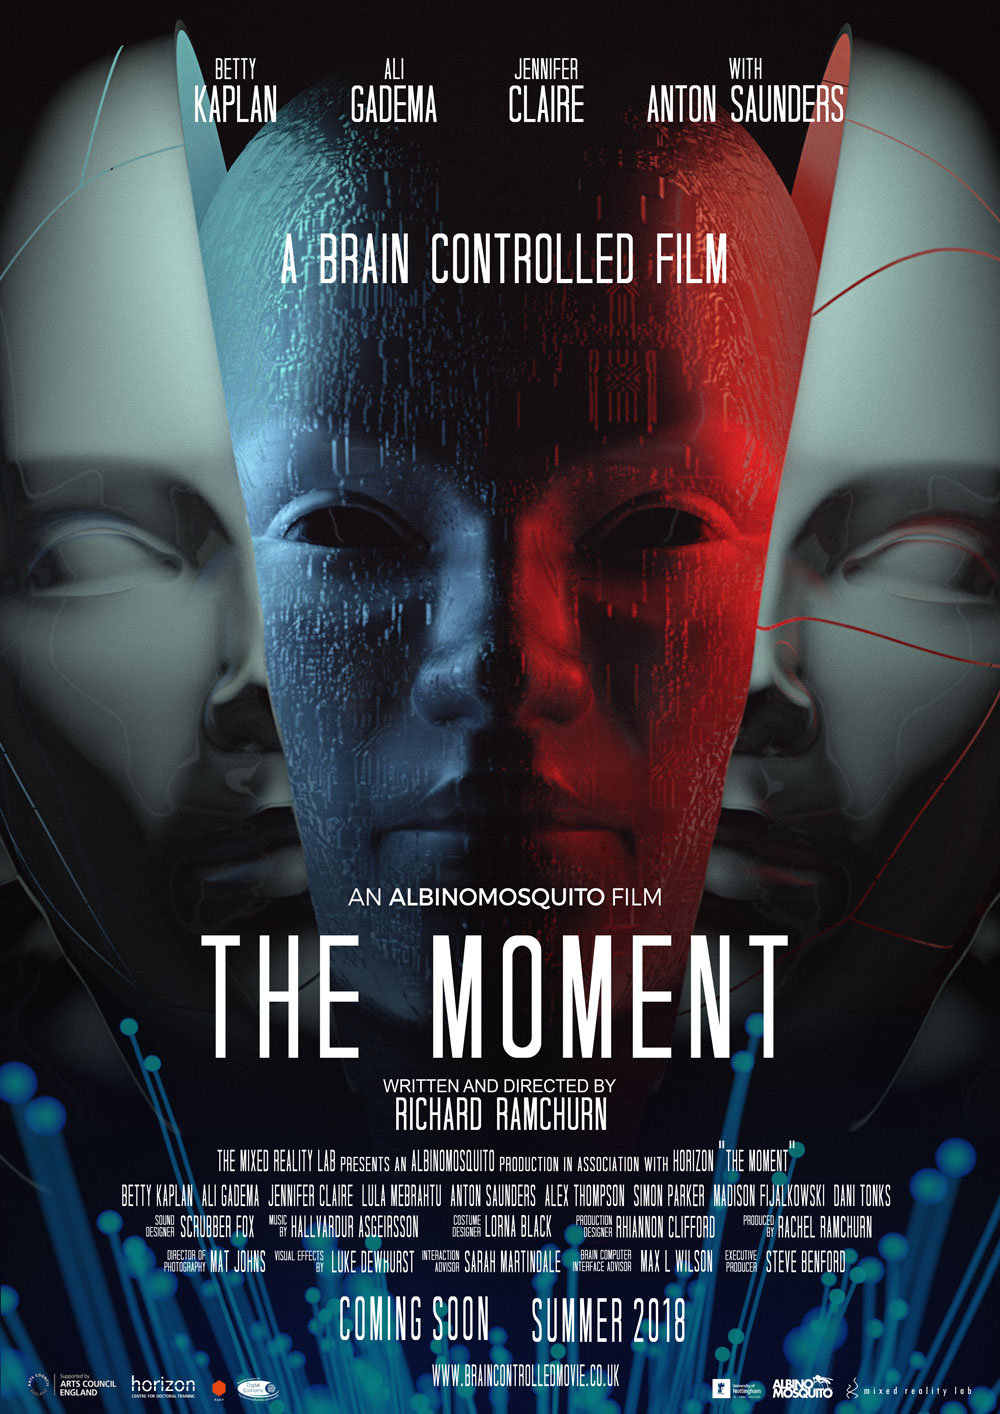 El póster promocional de <i> The Moment </ i>, Richard Ramchurn